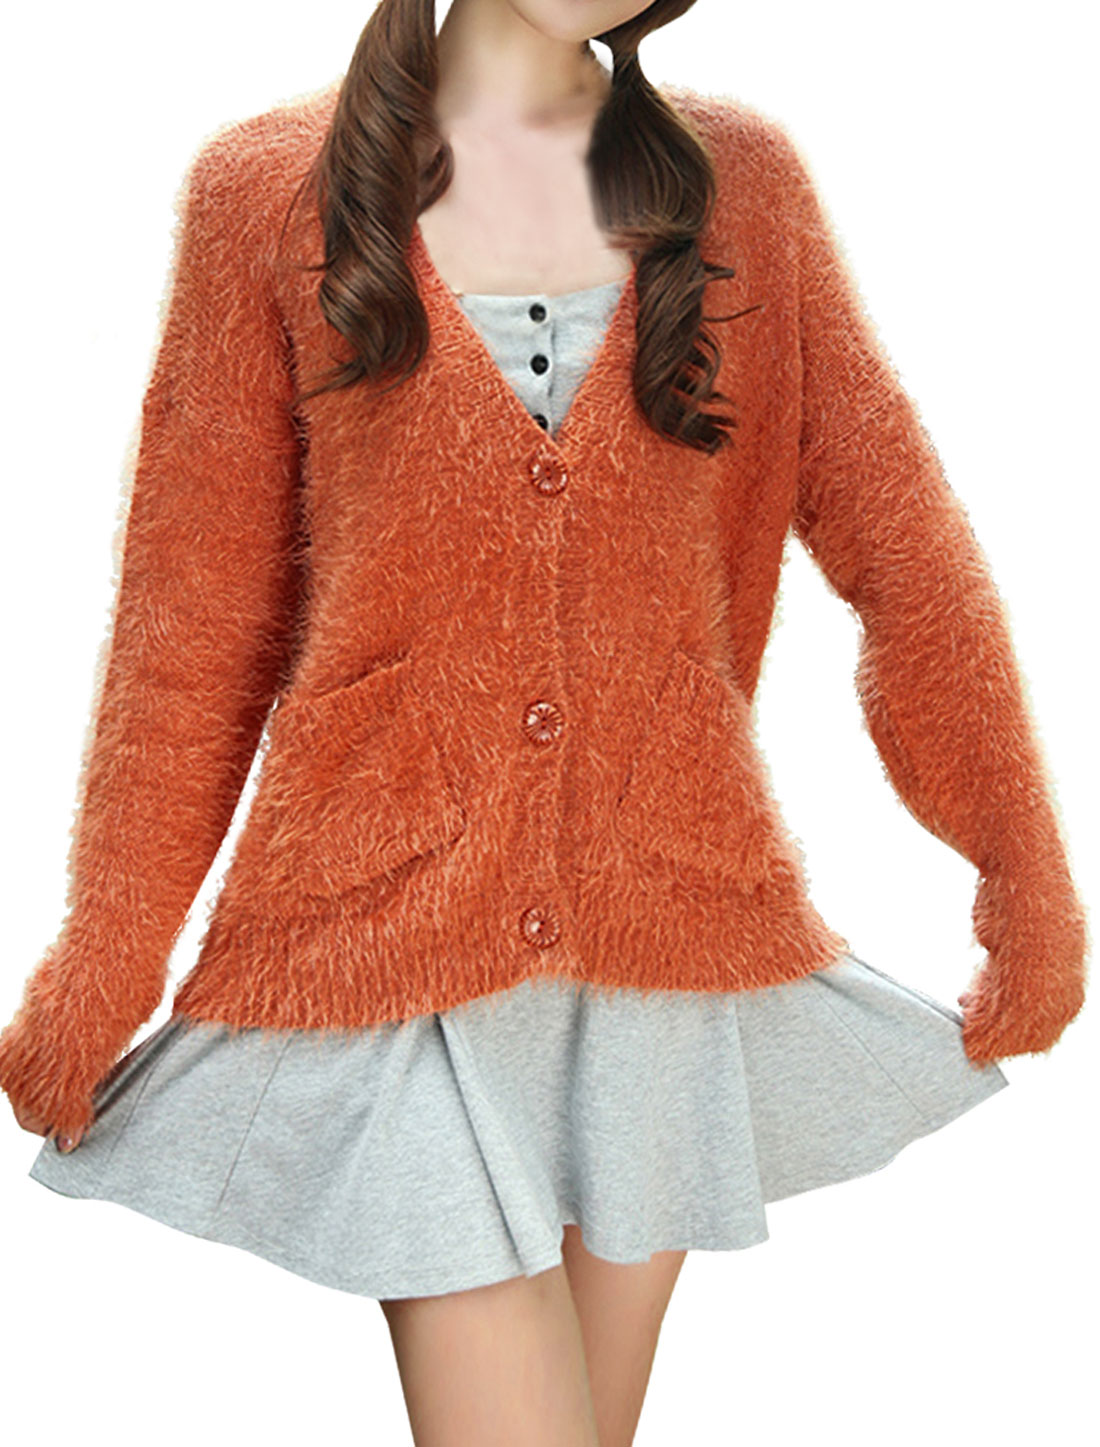 Women's V Neck Single Breasted Well Stretchy Orange Sweater Coat S